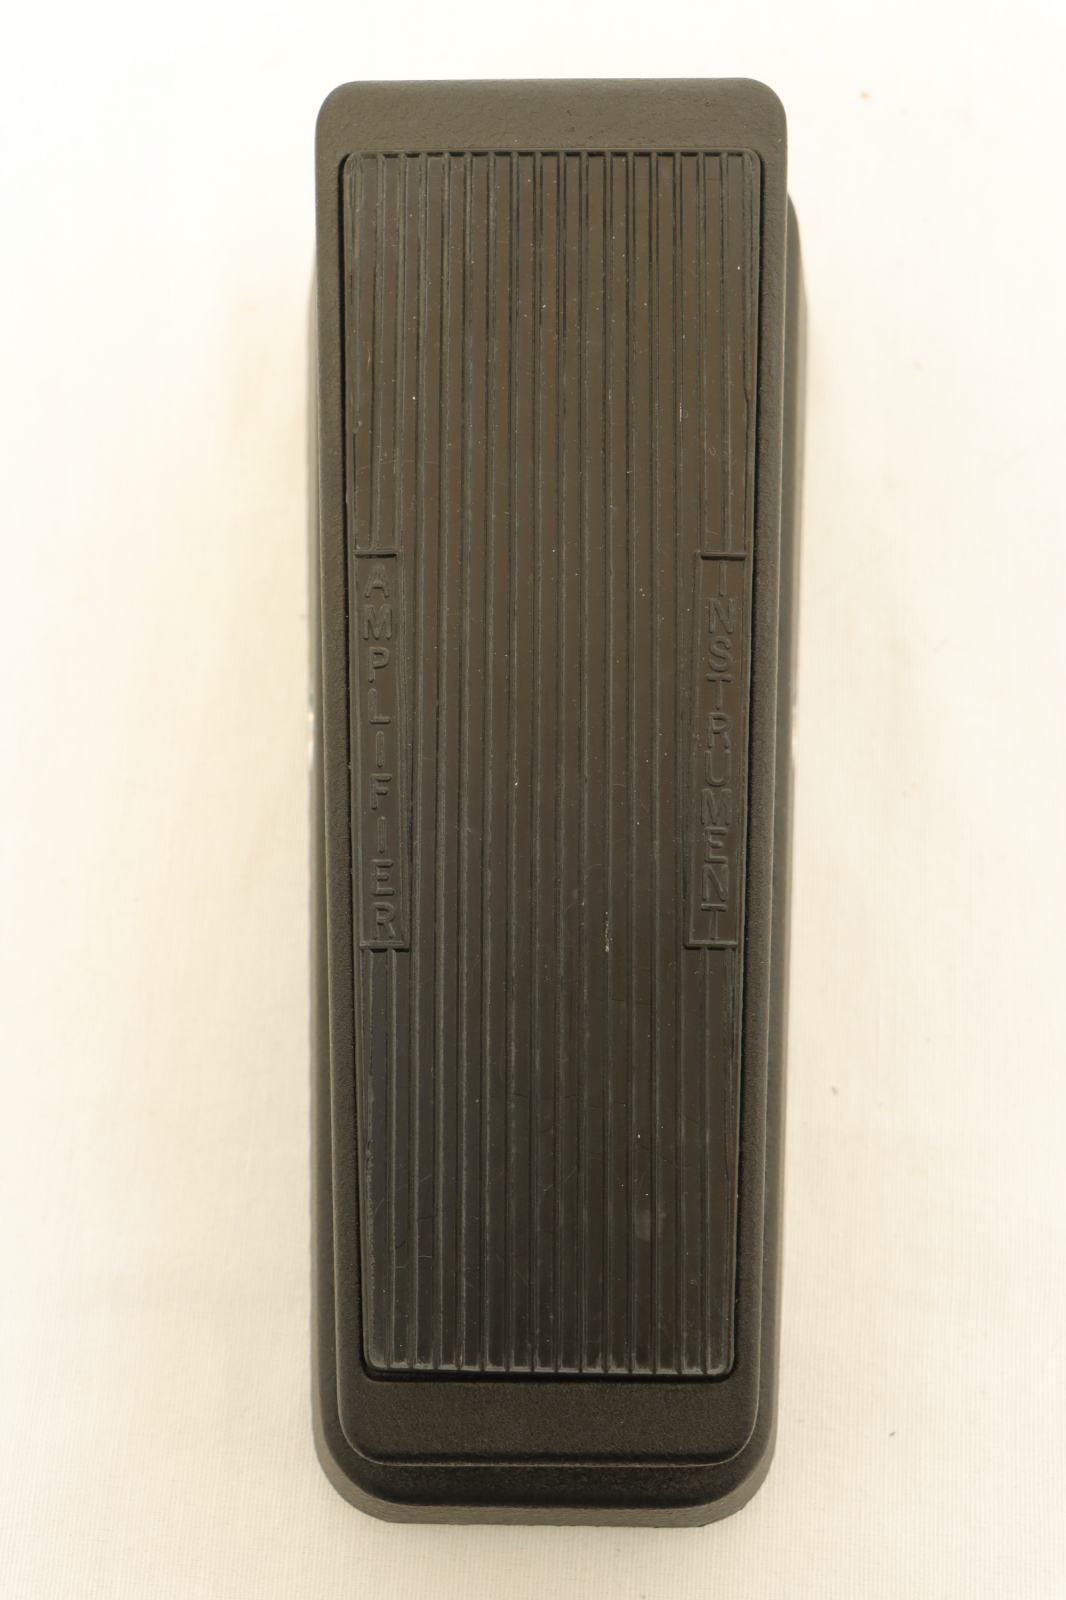 USED but Minty Fresh Dunlop GCB-80 High Gain Volume Pedal (looks unused)